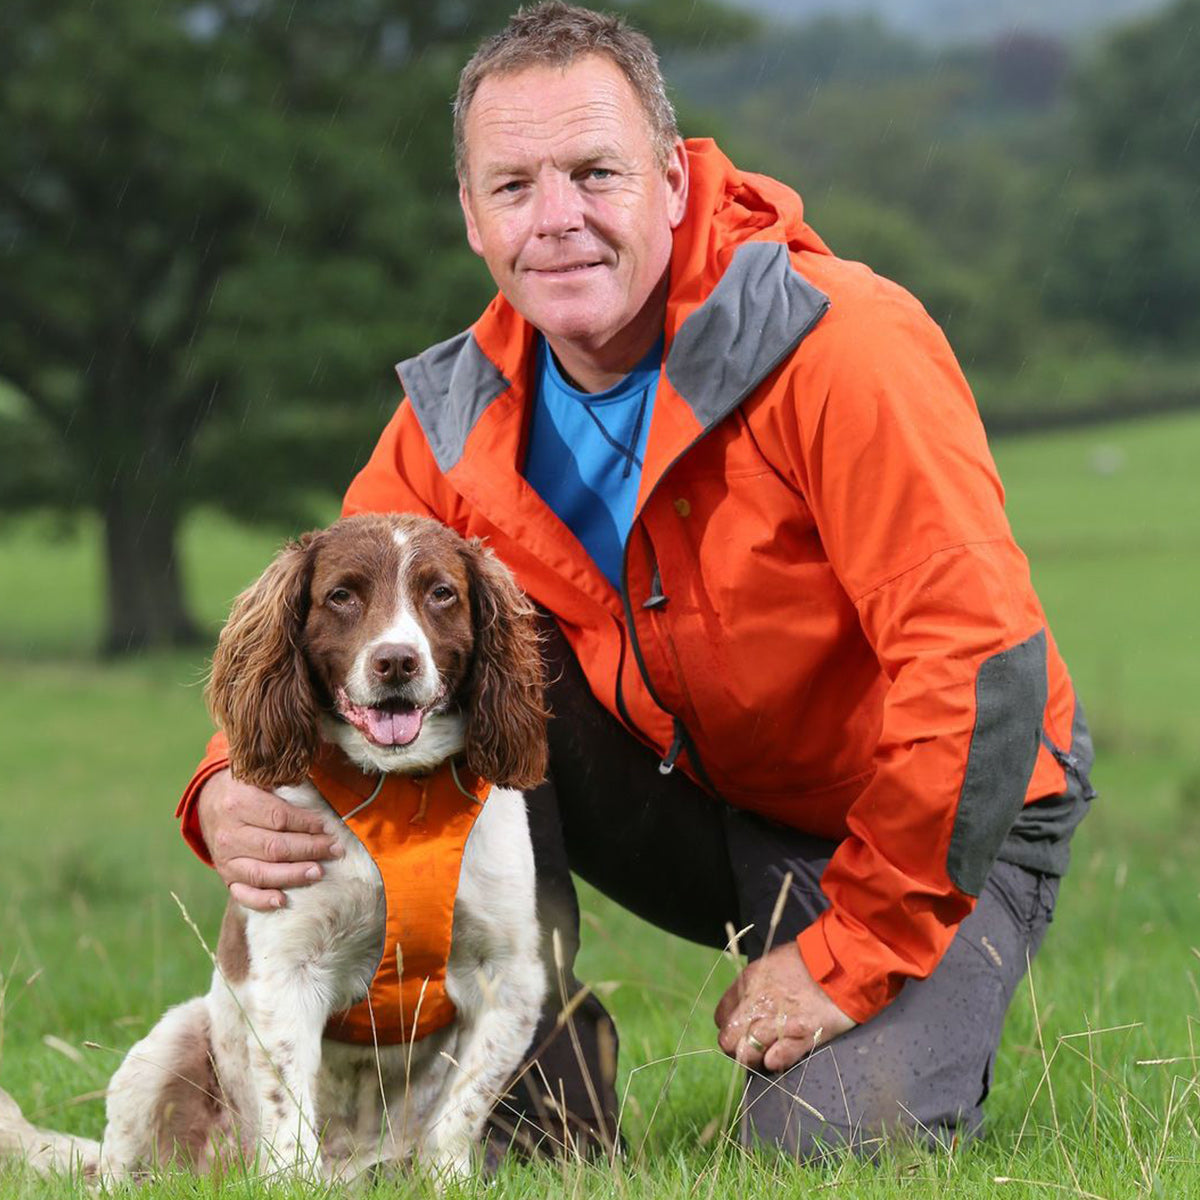 Kerry poses on the trail with his dog in an orange front harness that matches his raincoat.